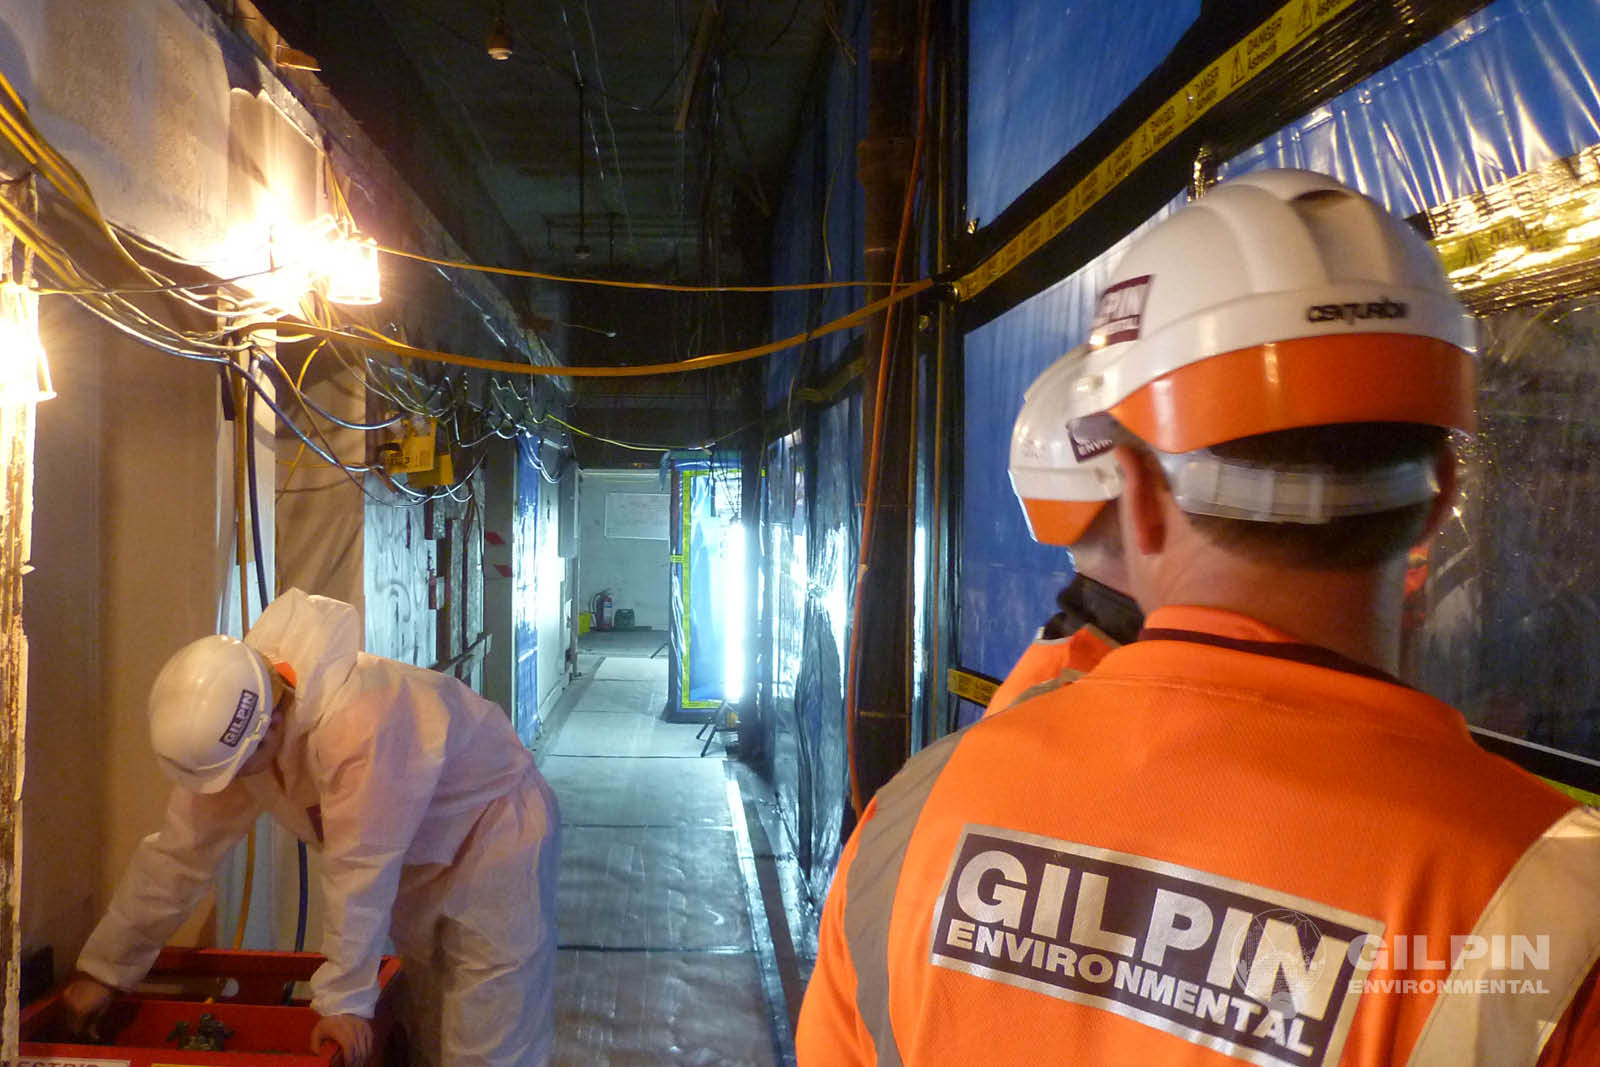 Gilpin Environmental - Asbestos Services in Devon